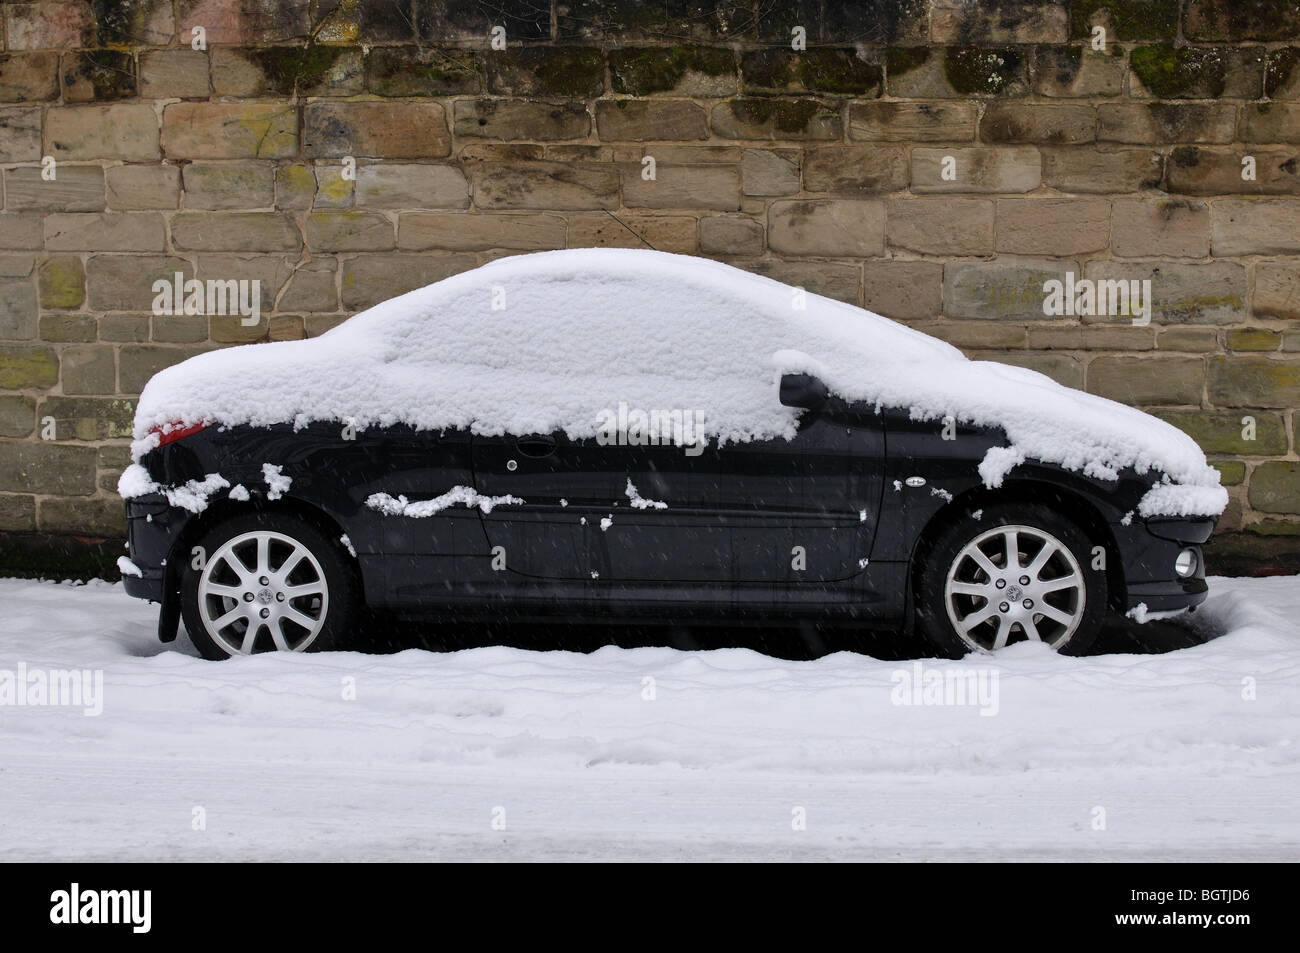 Peugeot 206CC car parked in snow, UK Stock Photo